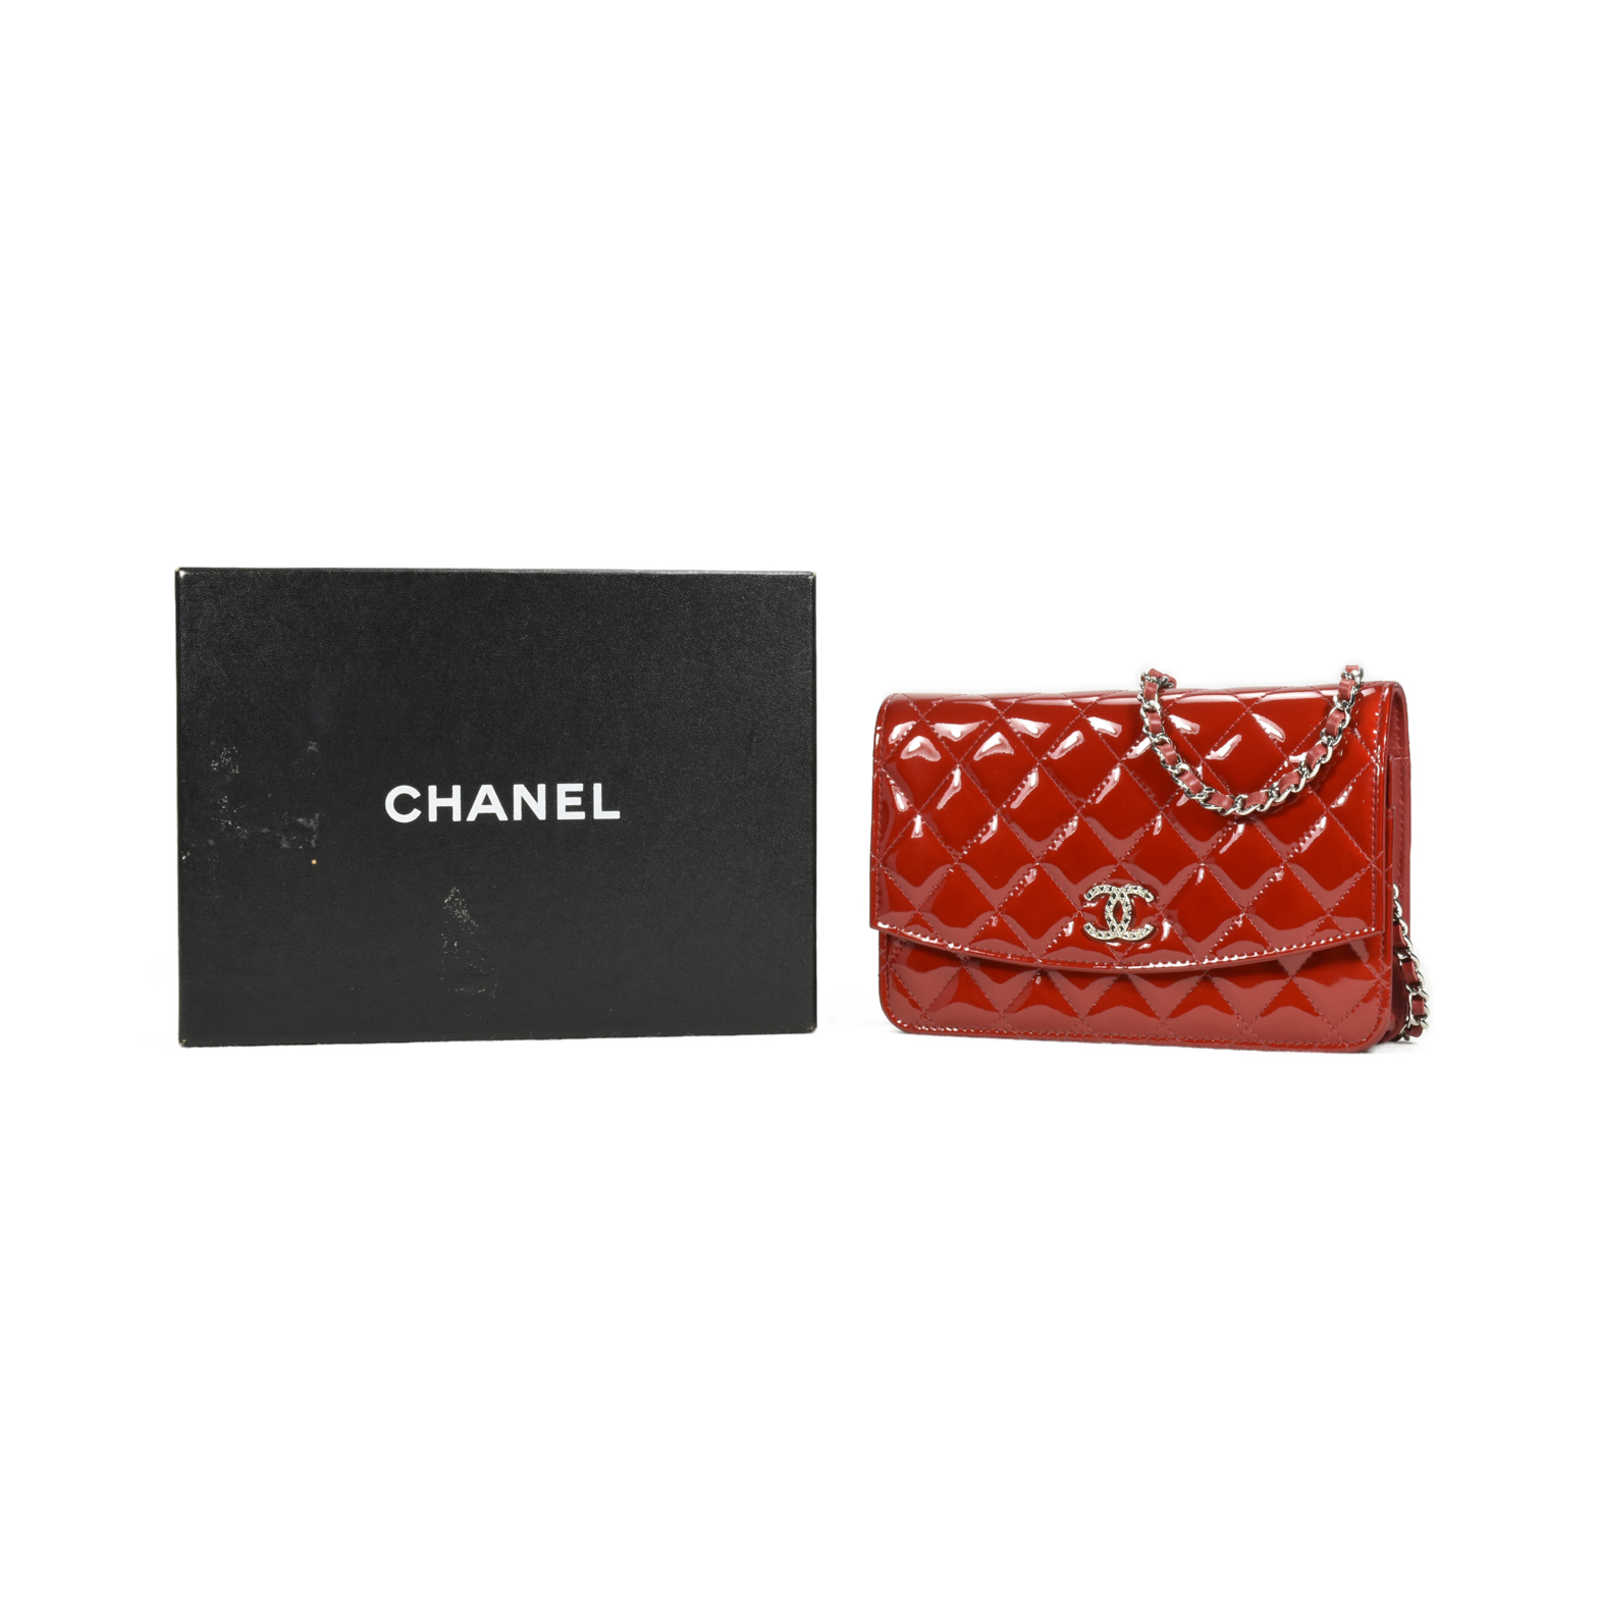 6c61c2fc7b59b7 ... Authentic Second Hand Chanel Patent Brilliant Wallet on Chain  (PSS-240-00171)